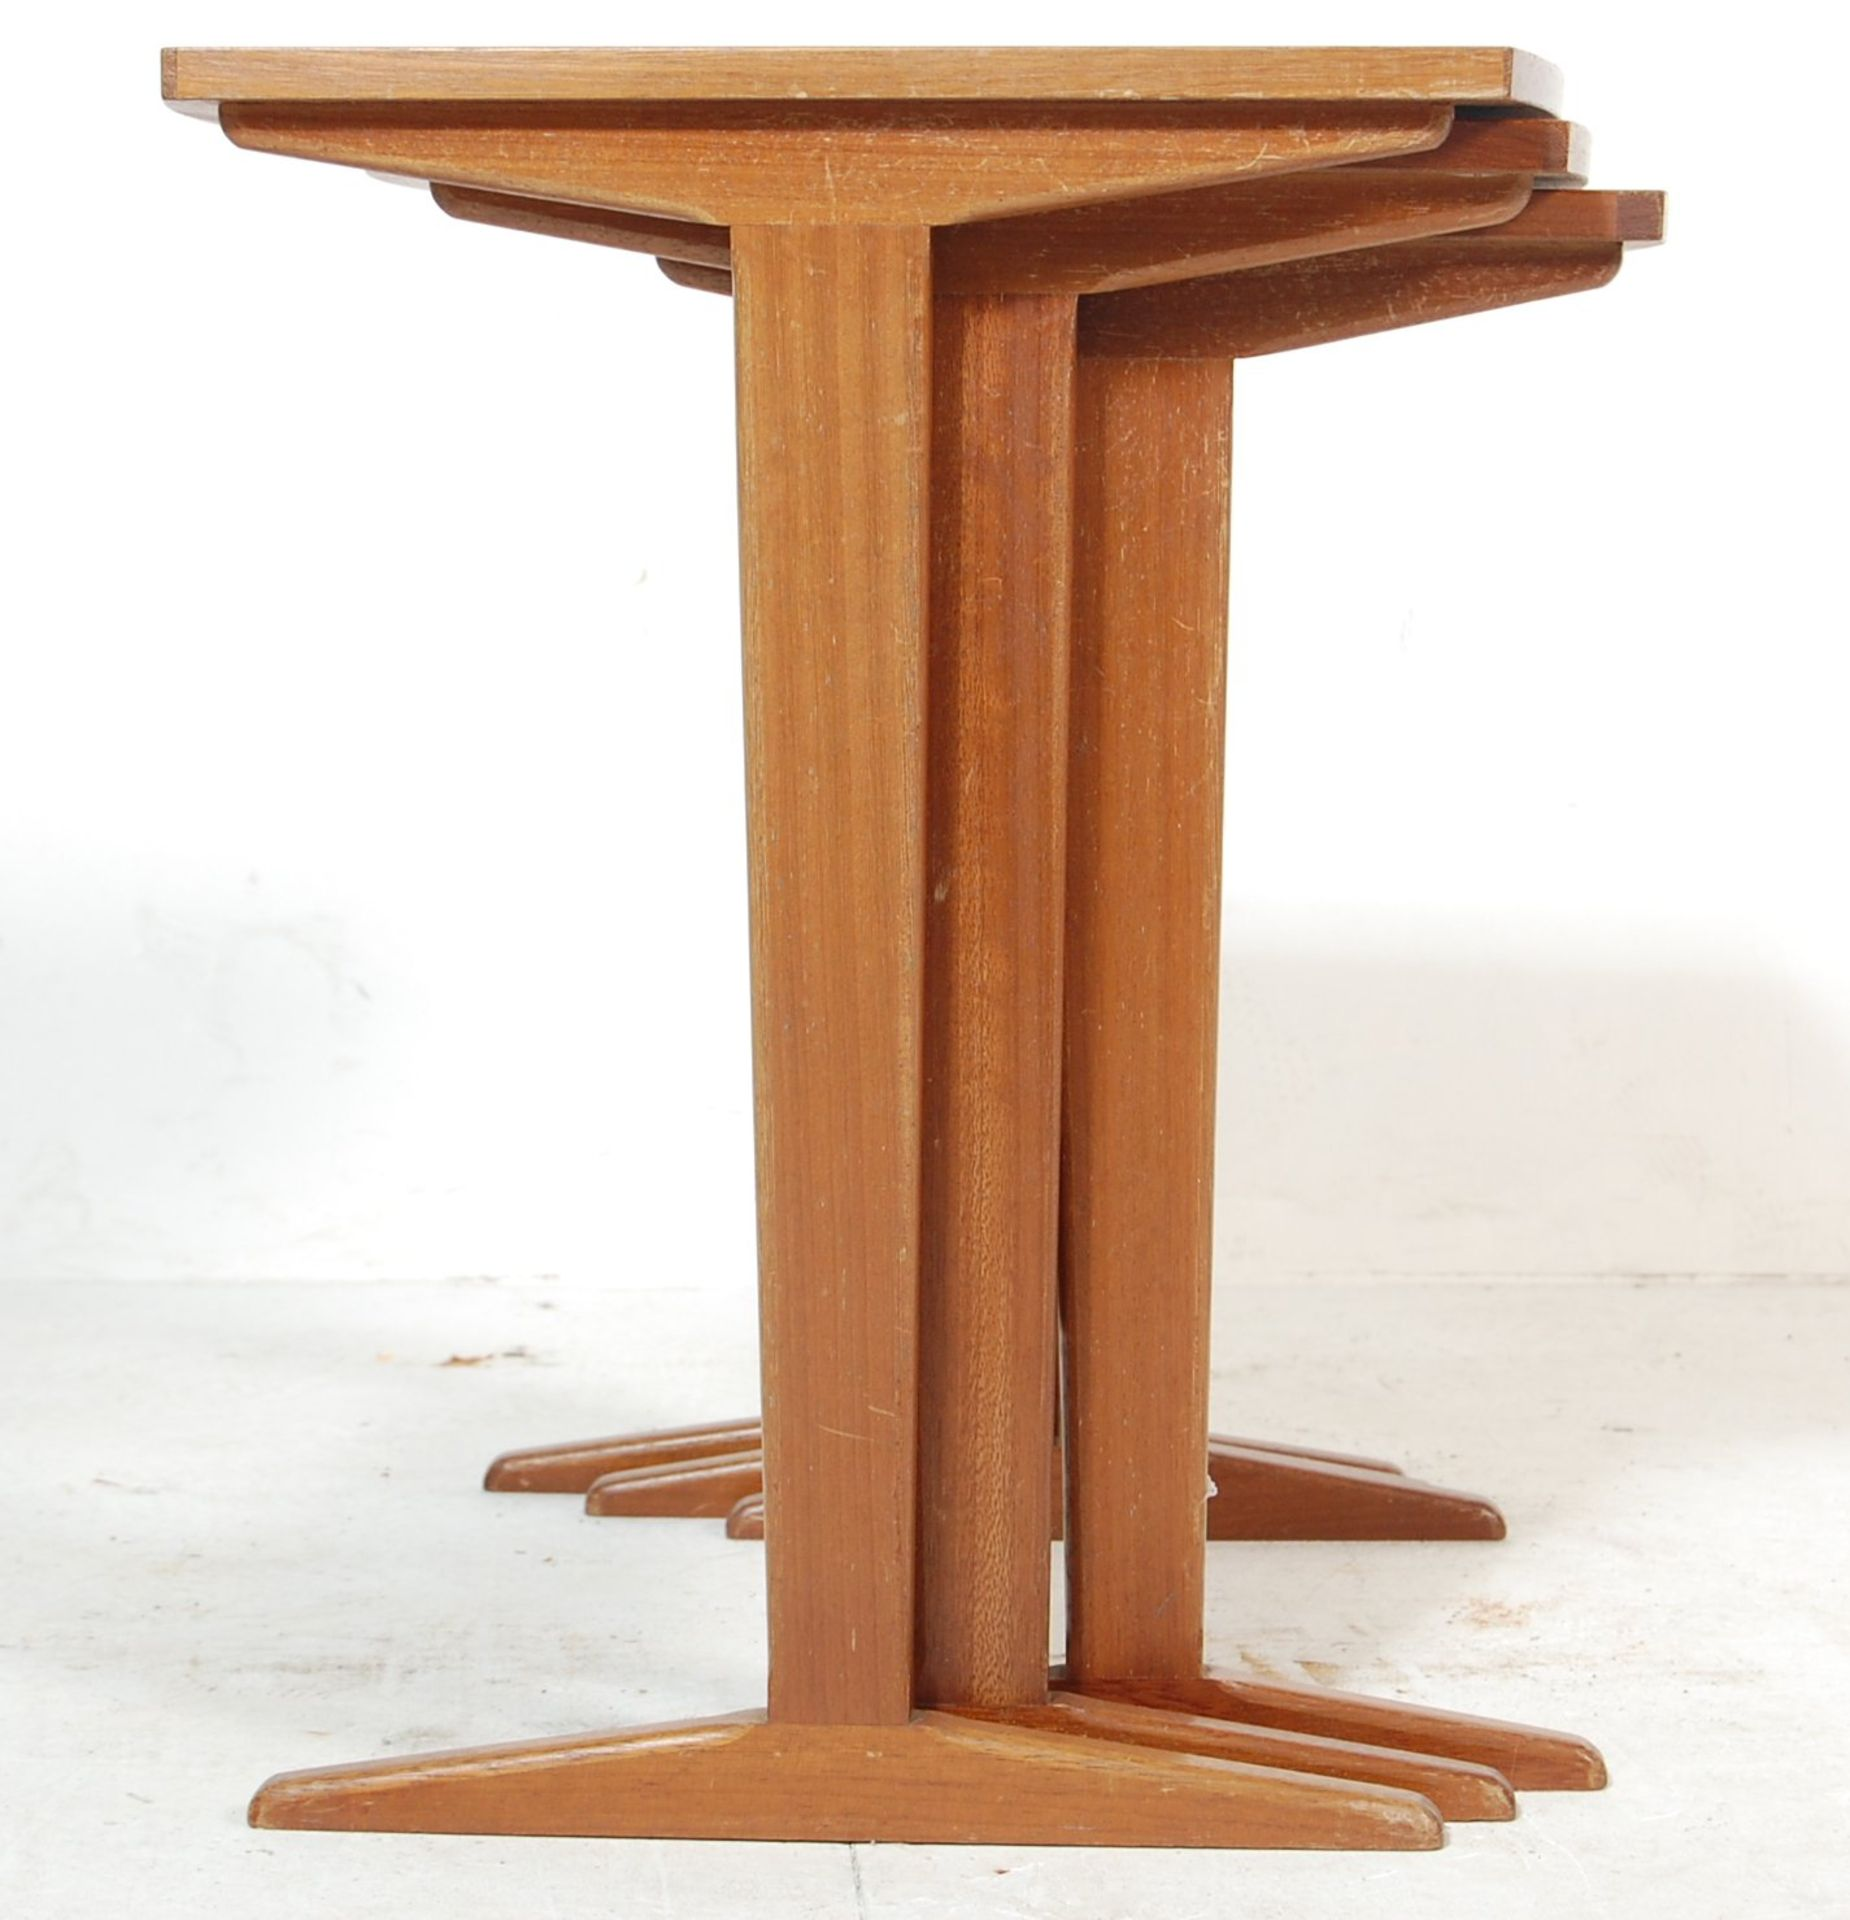 G-PLAN - RETRO 1970'S TEAK WOOD NEST OF TABLES - Image 4 of 5